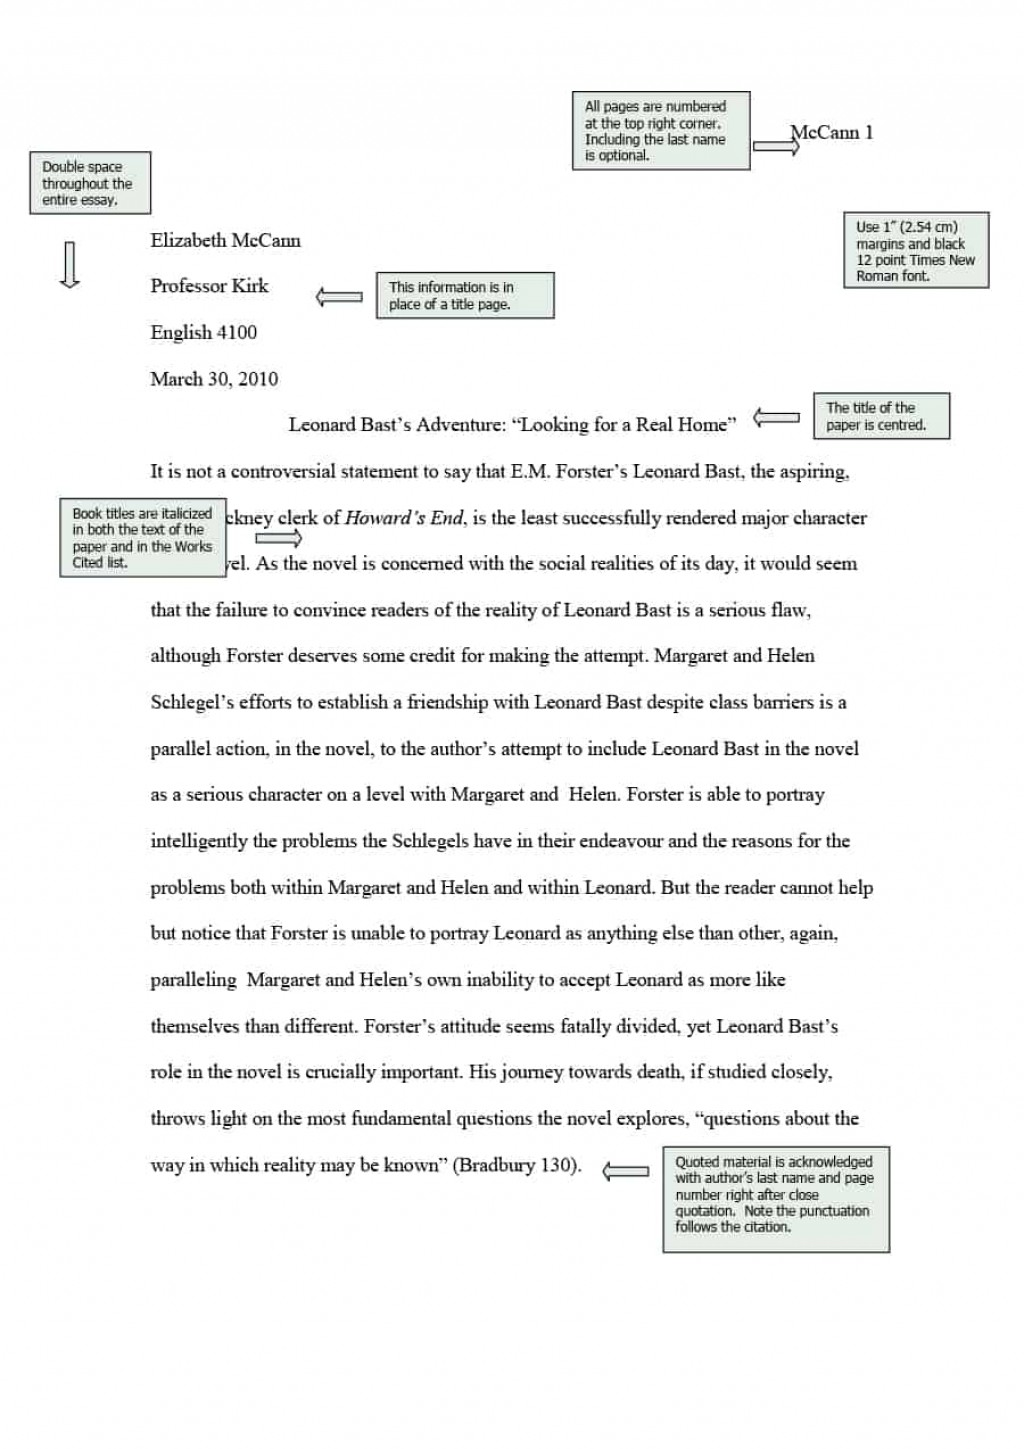 008 Mla Essay Example Format Template Magnificent Title Page Informative Outline Cite In Anthology Large